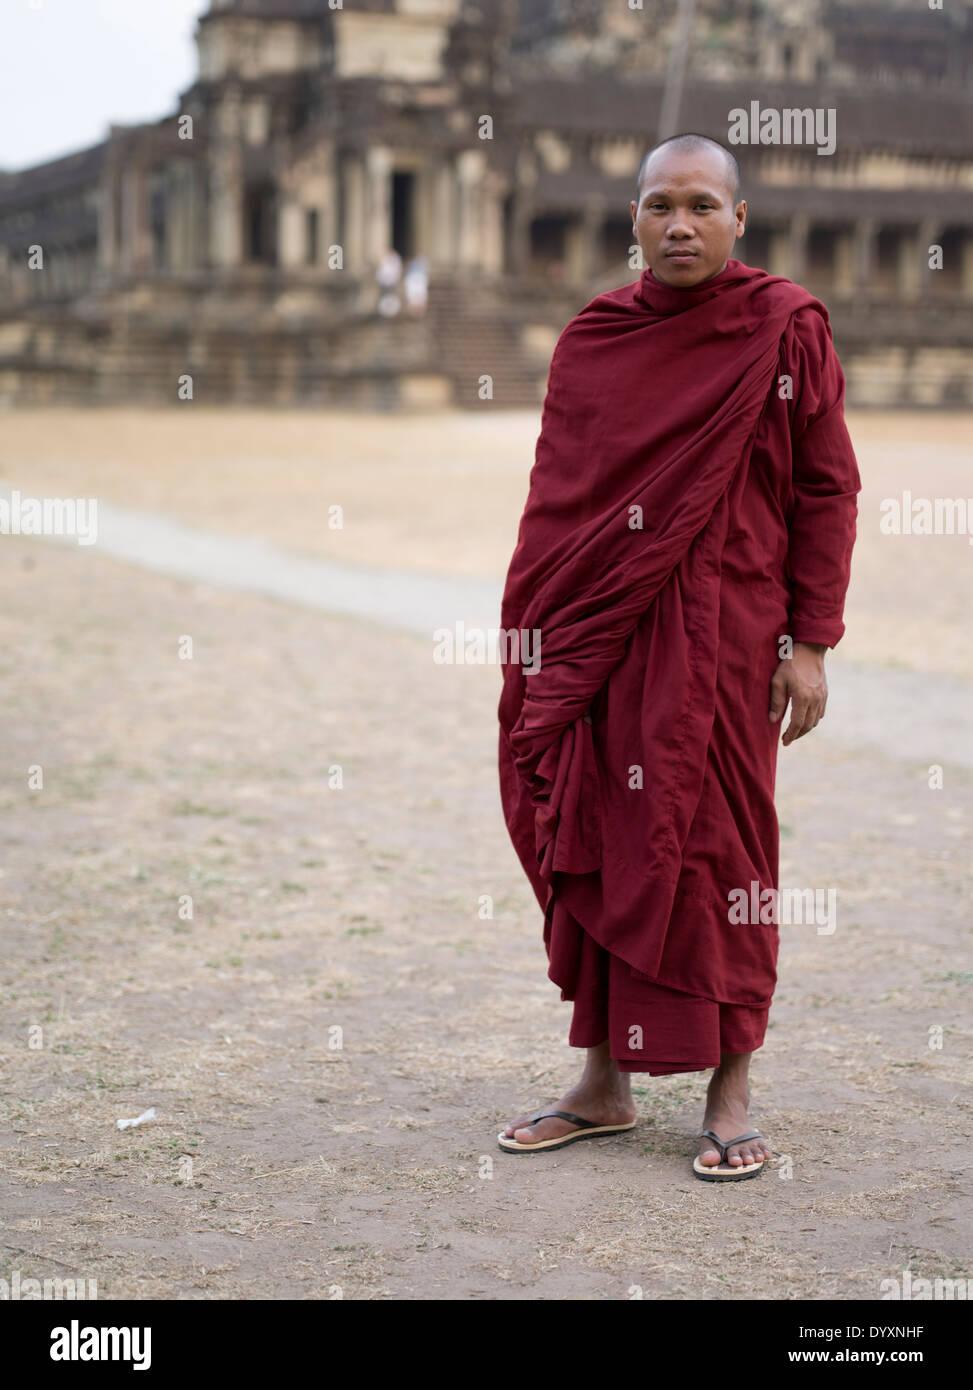 Buddhist monk in traditional robes at Angkor Wat, Siem Reap, Cambodia - Stock Image